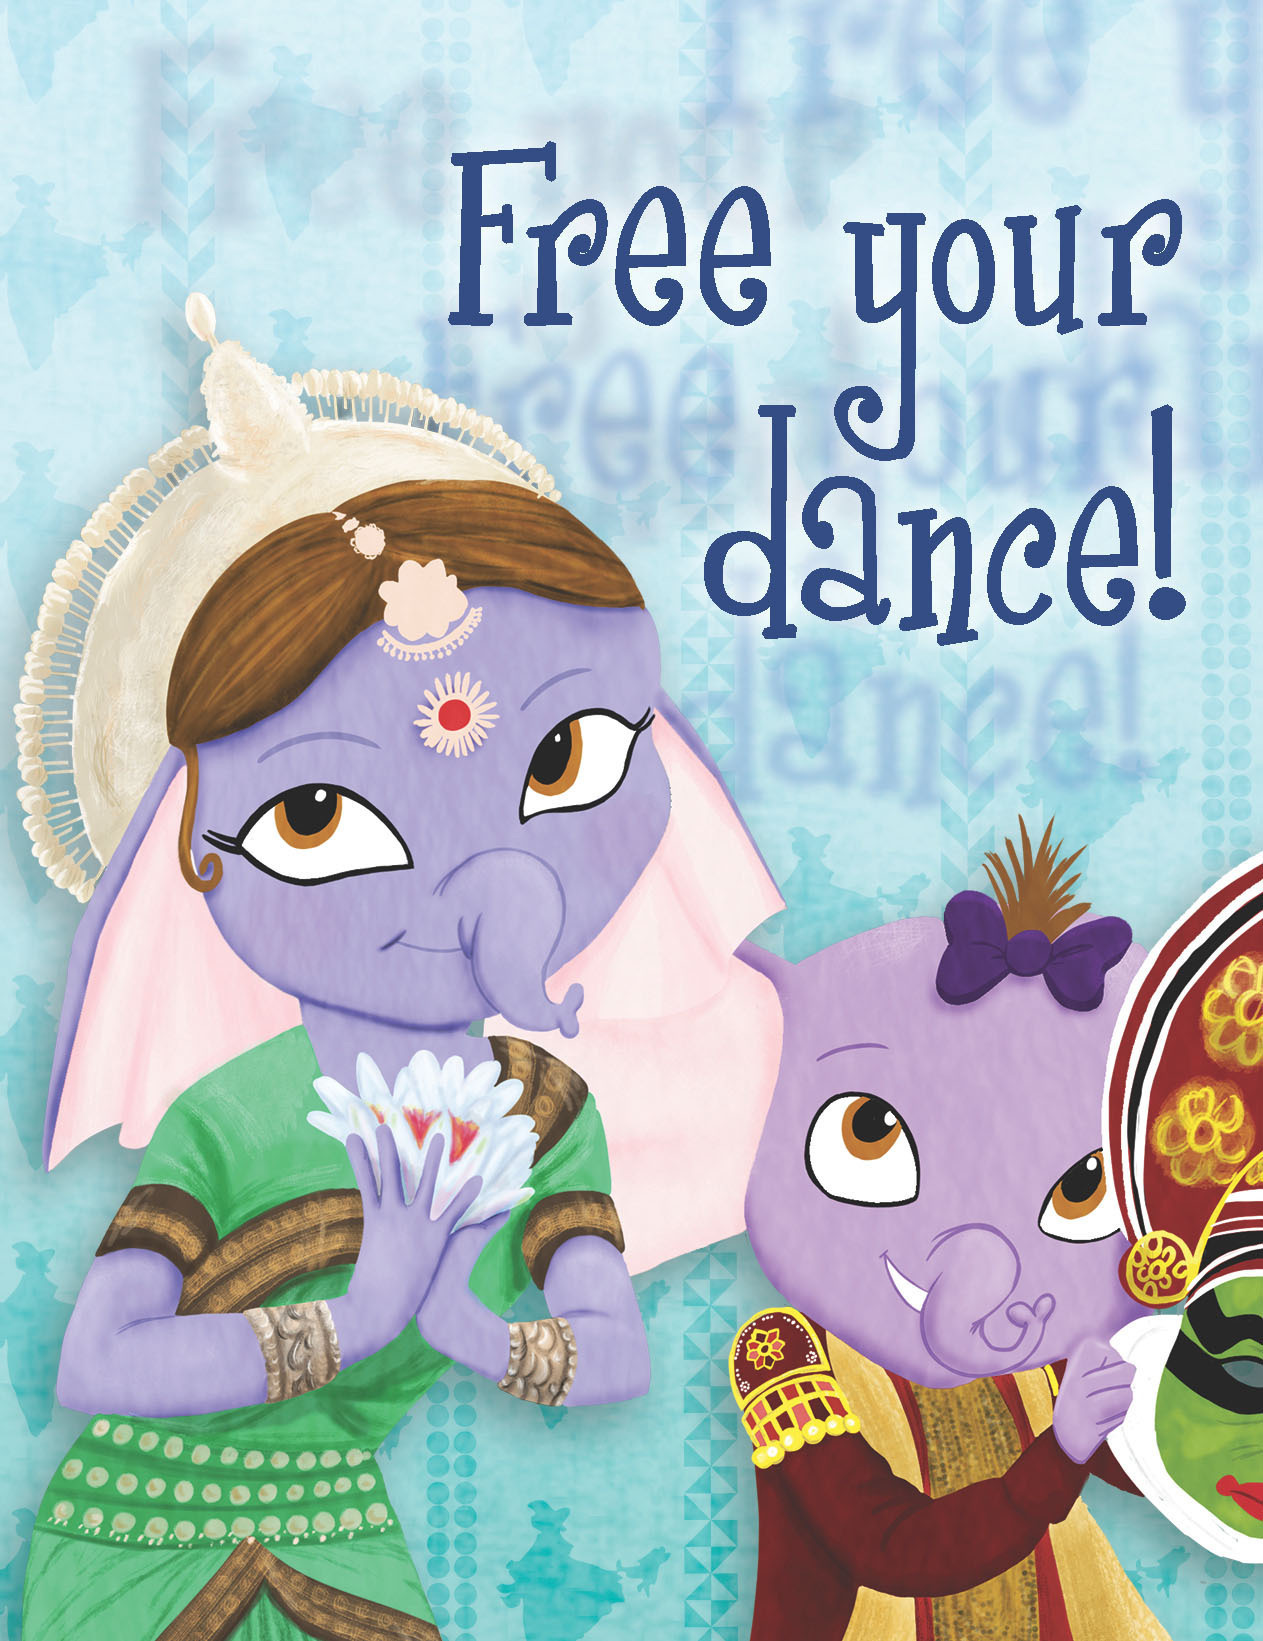 MAYA AND LEELA PRESENT: DANCES OF INDIA Sales to Support Two Entrepreneurs in India and More